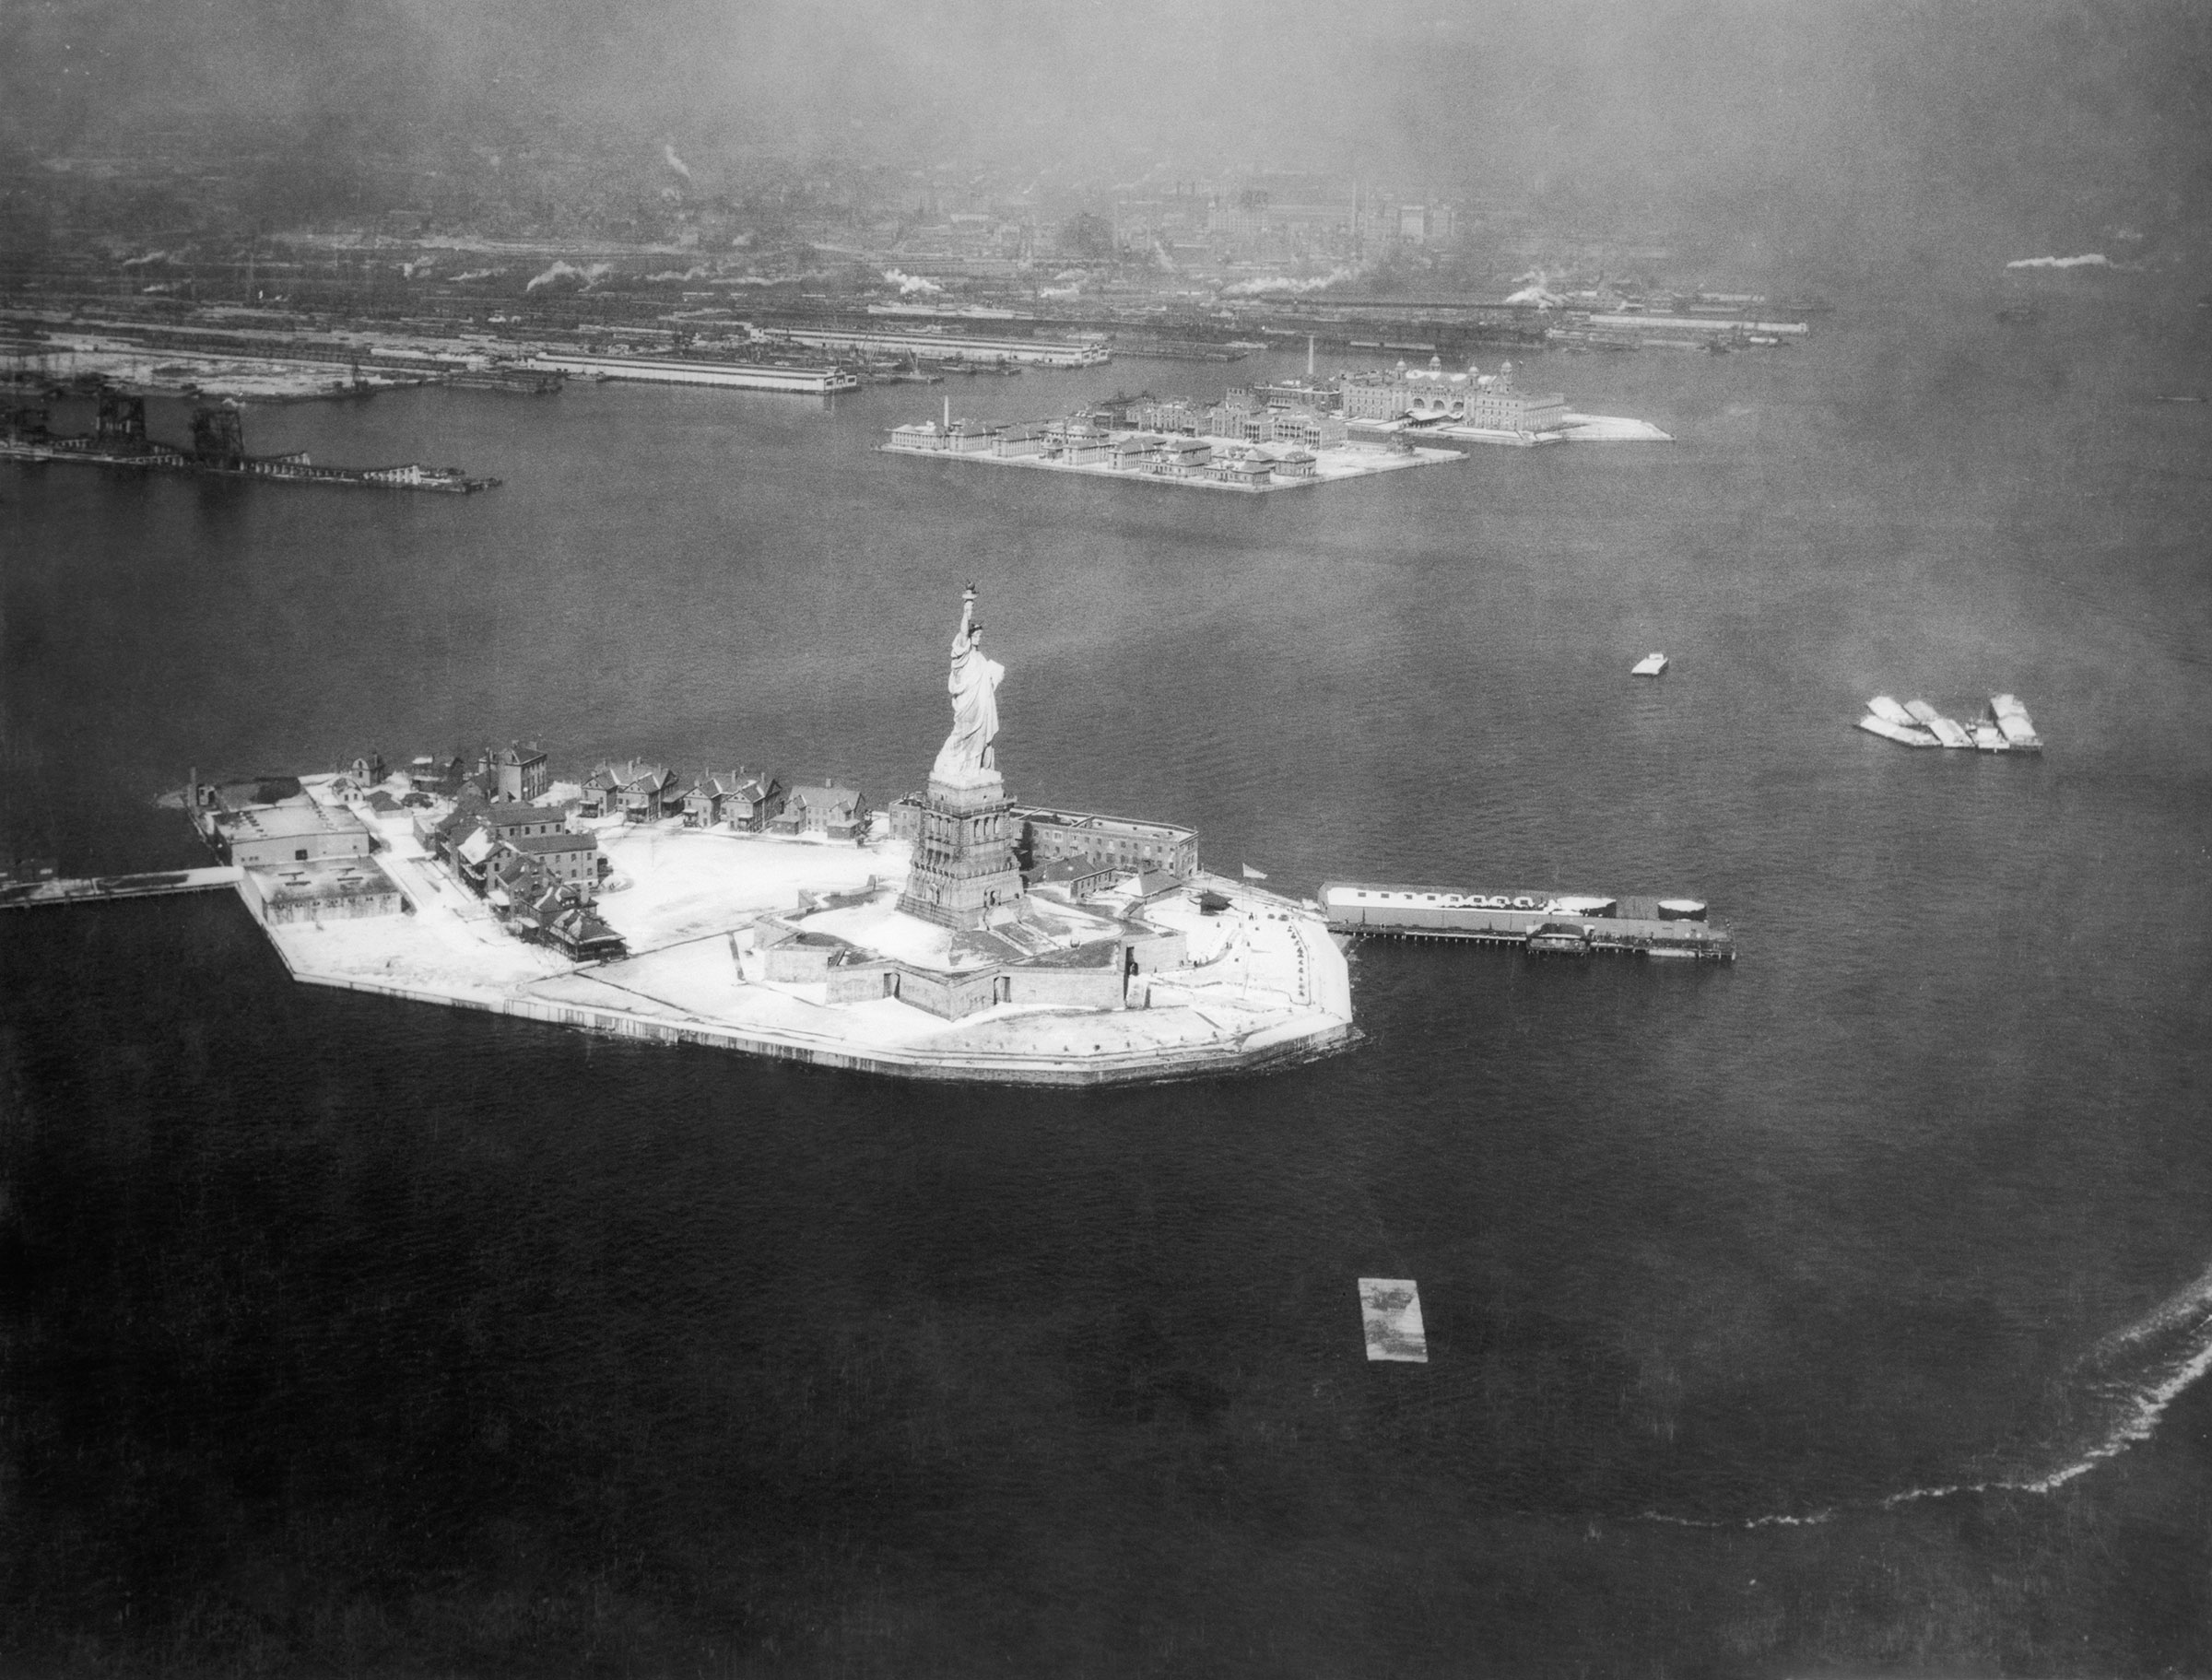 Aerial view of the Statue of Liberty, with Ellis Island in the background, date unknown.